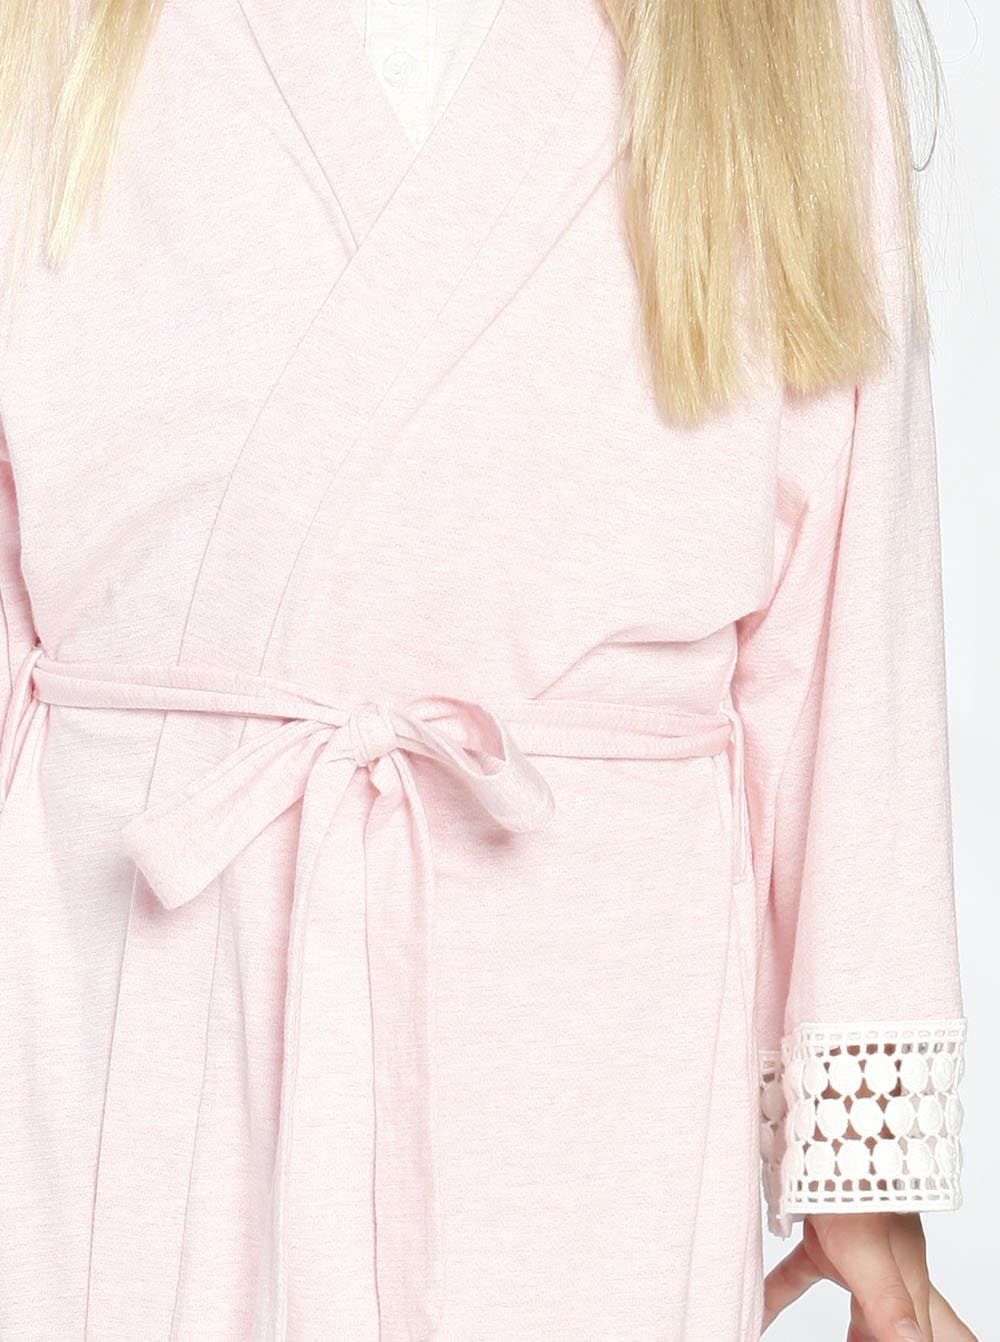 Ruby Joy Daughter Robe - Light Pink details